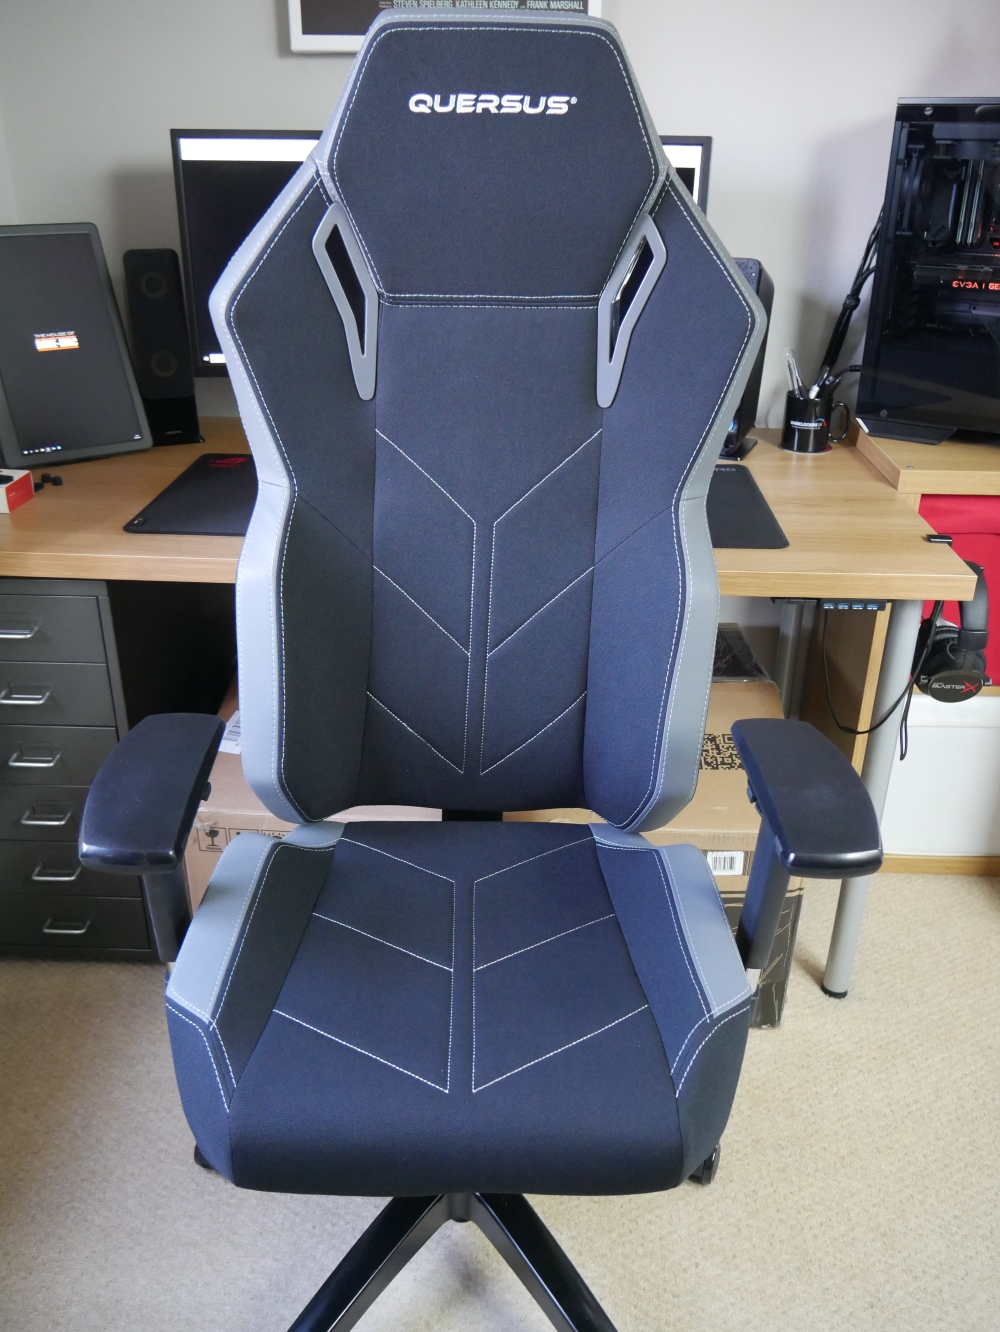 Fabulous Quersus Vaos 501 Gaming Chair Review Machost Co Dining Chair Design Ideas Machostcouk